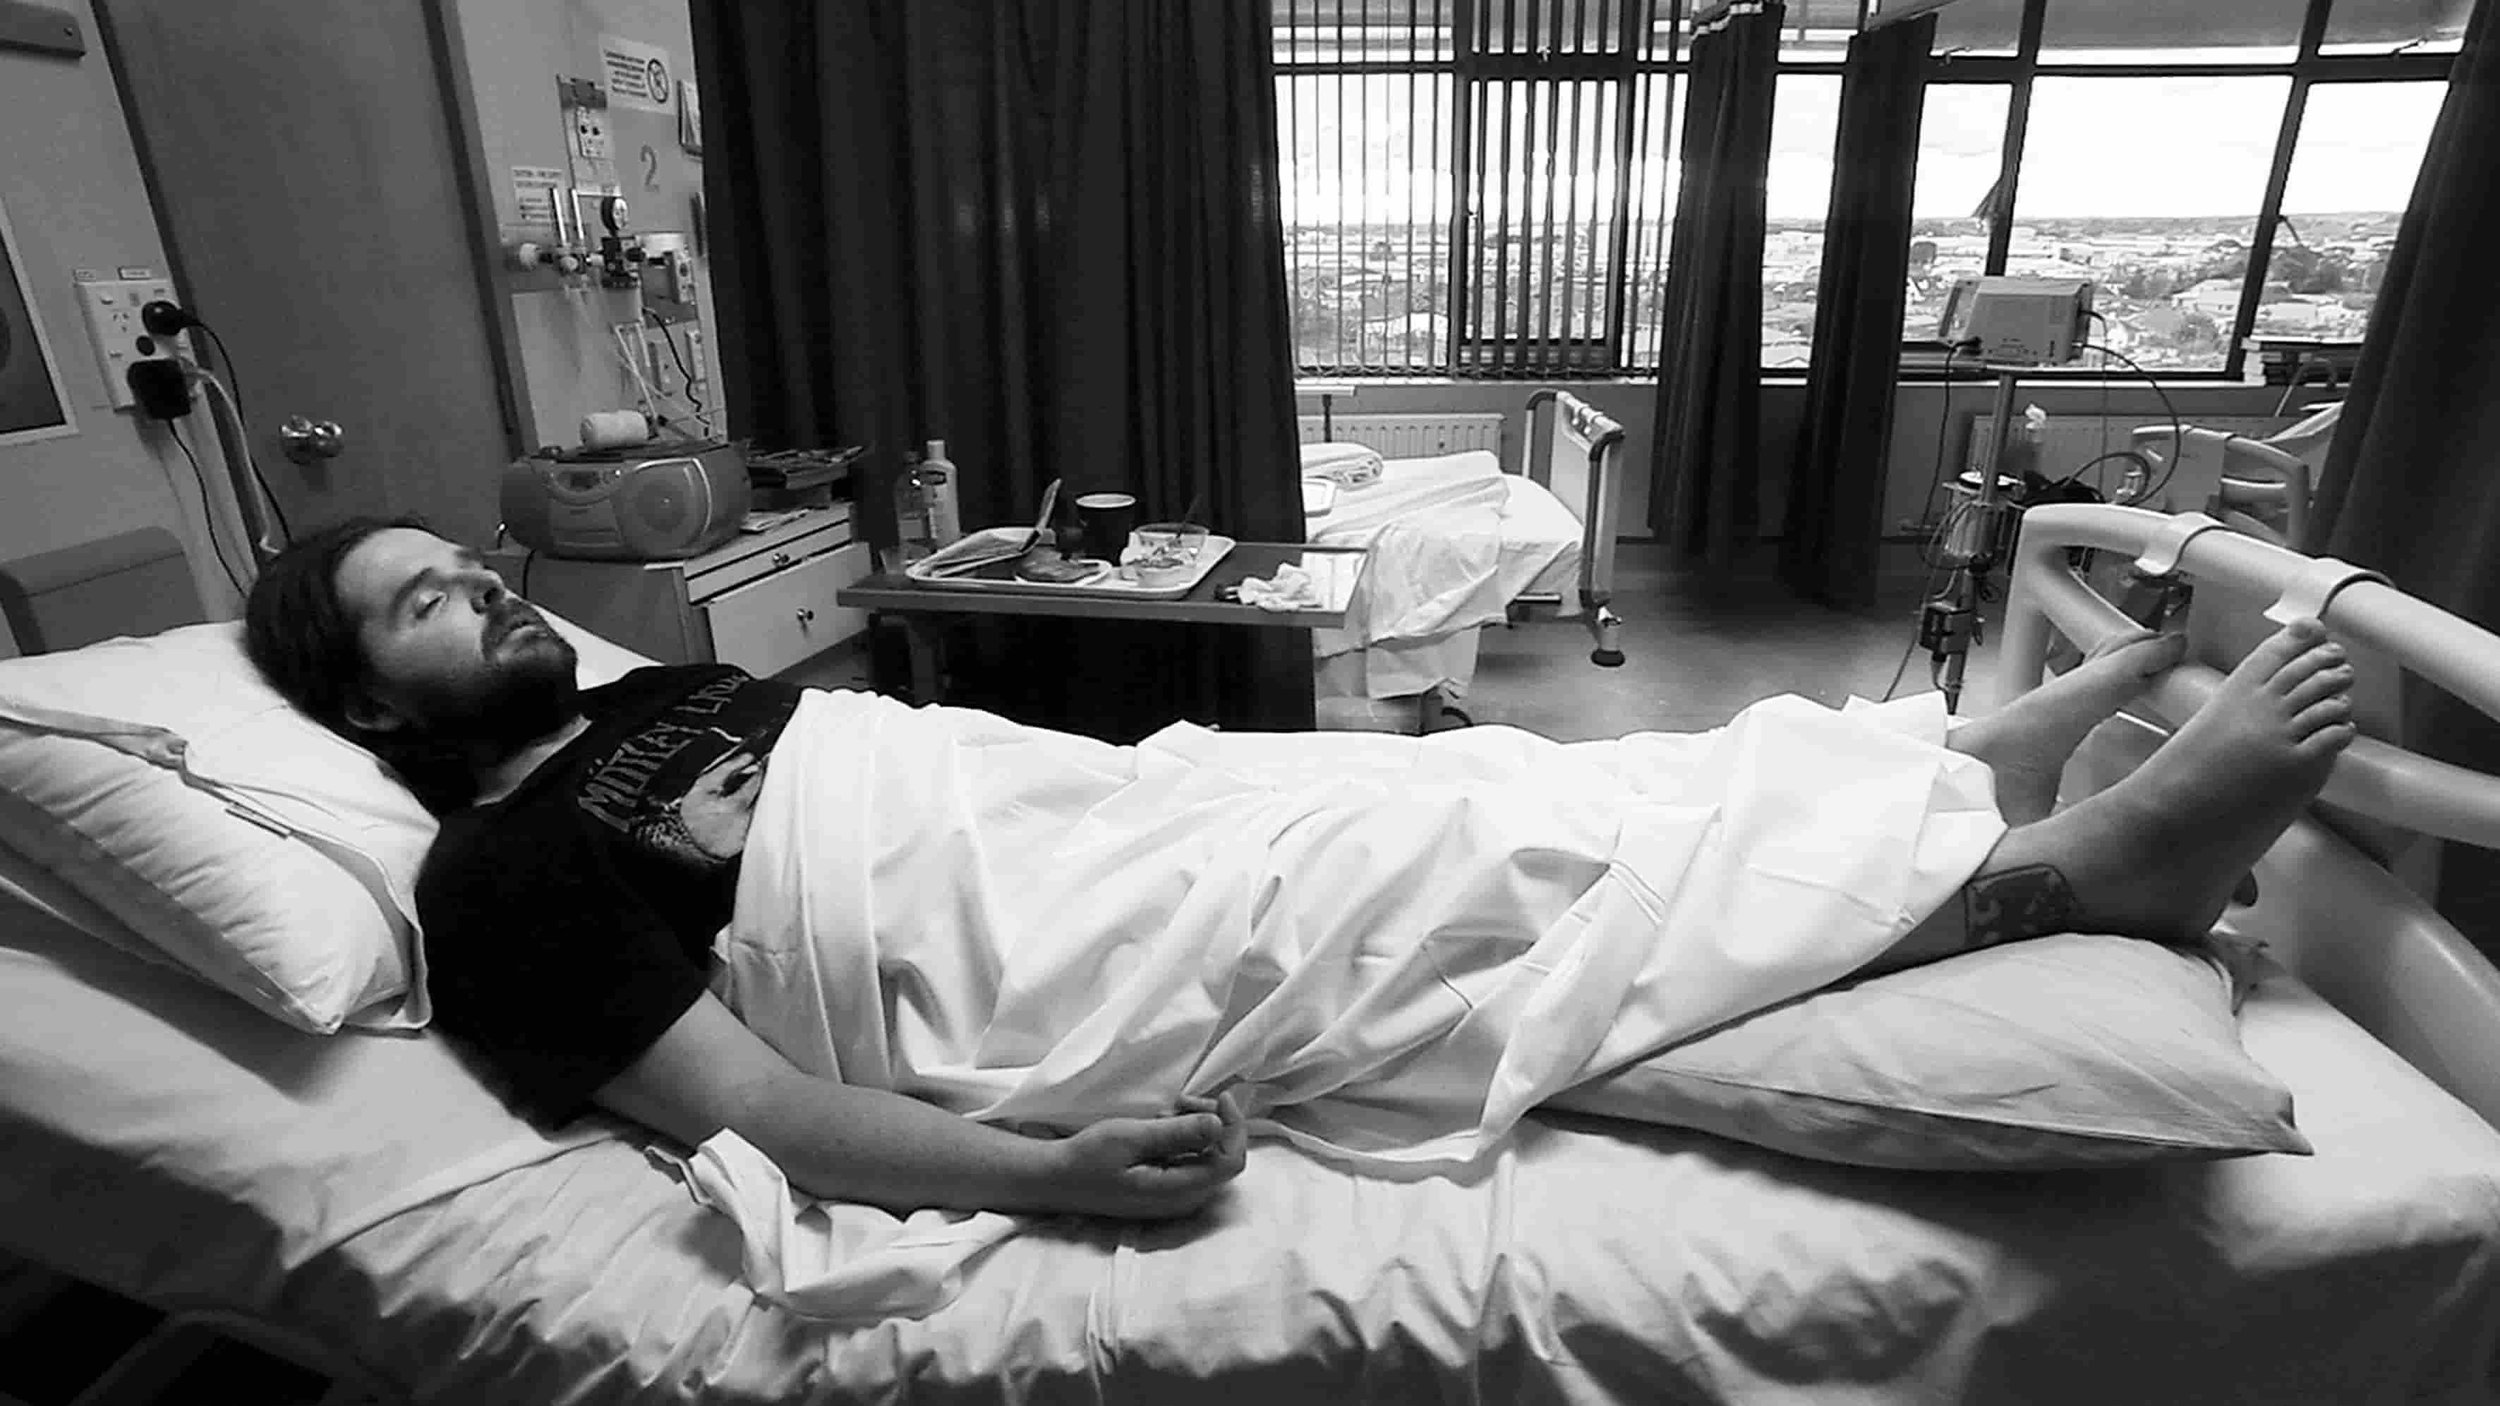 Booga in hospital indie documentary Swagger of Thieves